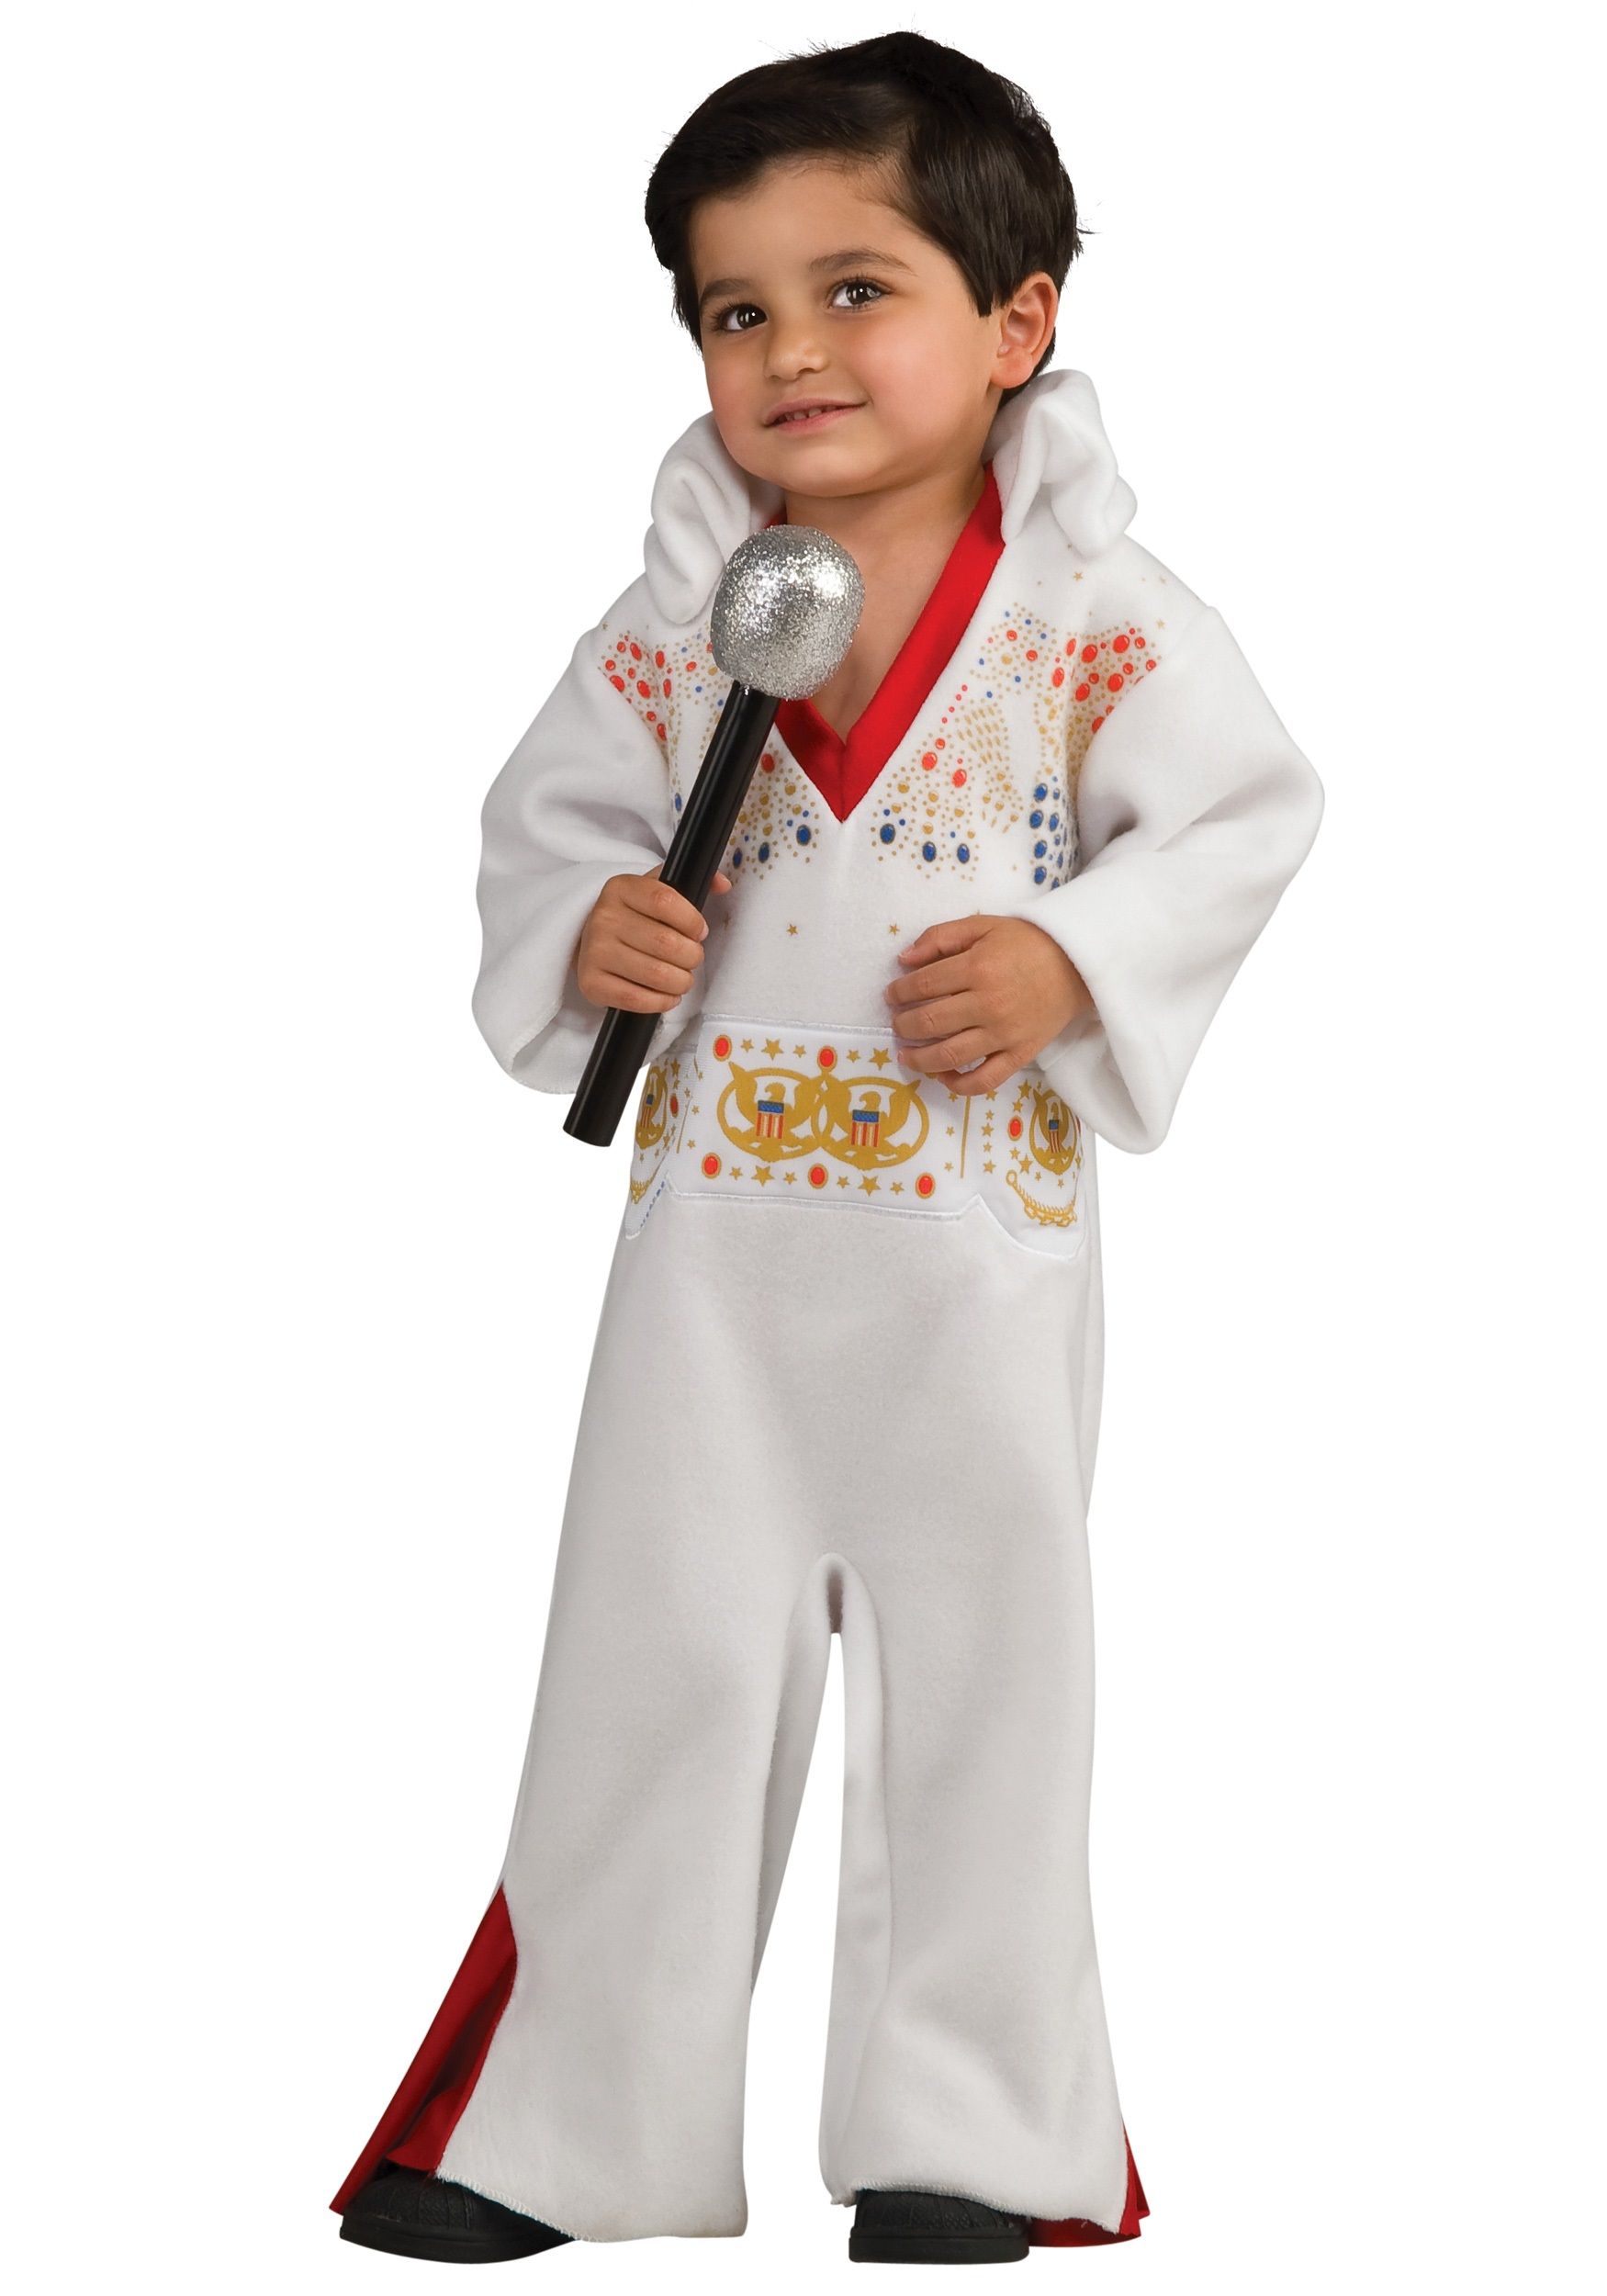 Toddler Elvis Costume Romper  sc 1 st  Halloween Costumes & Toddler Elvis Costume Romper - Halloween Costumes